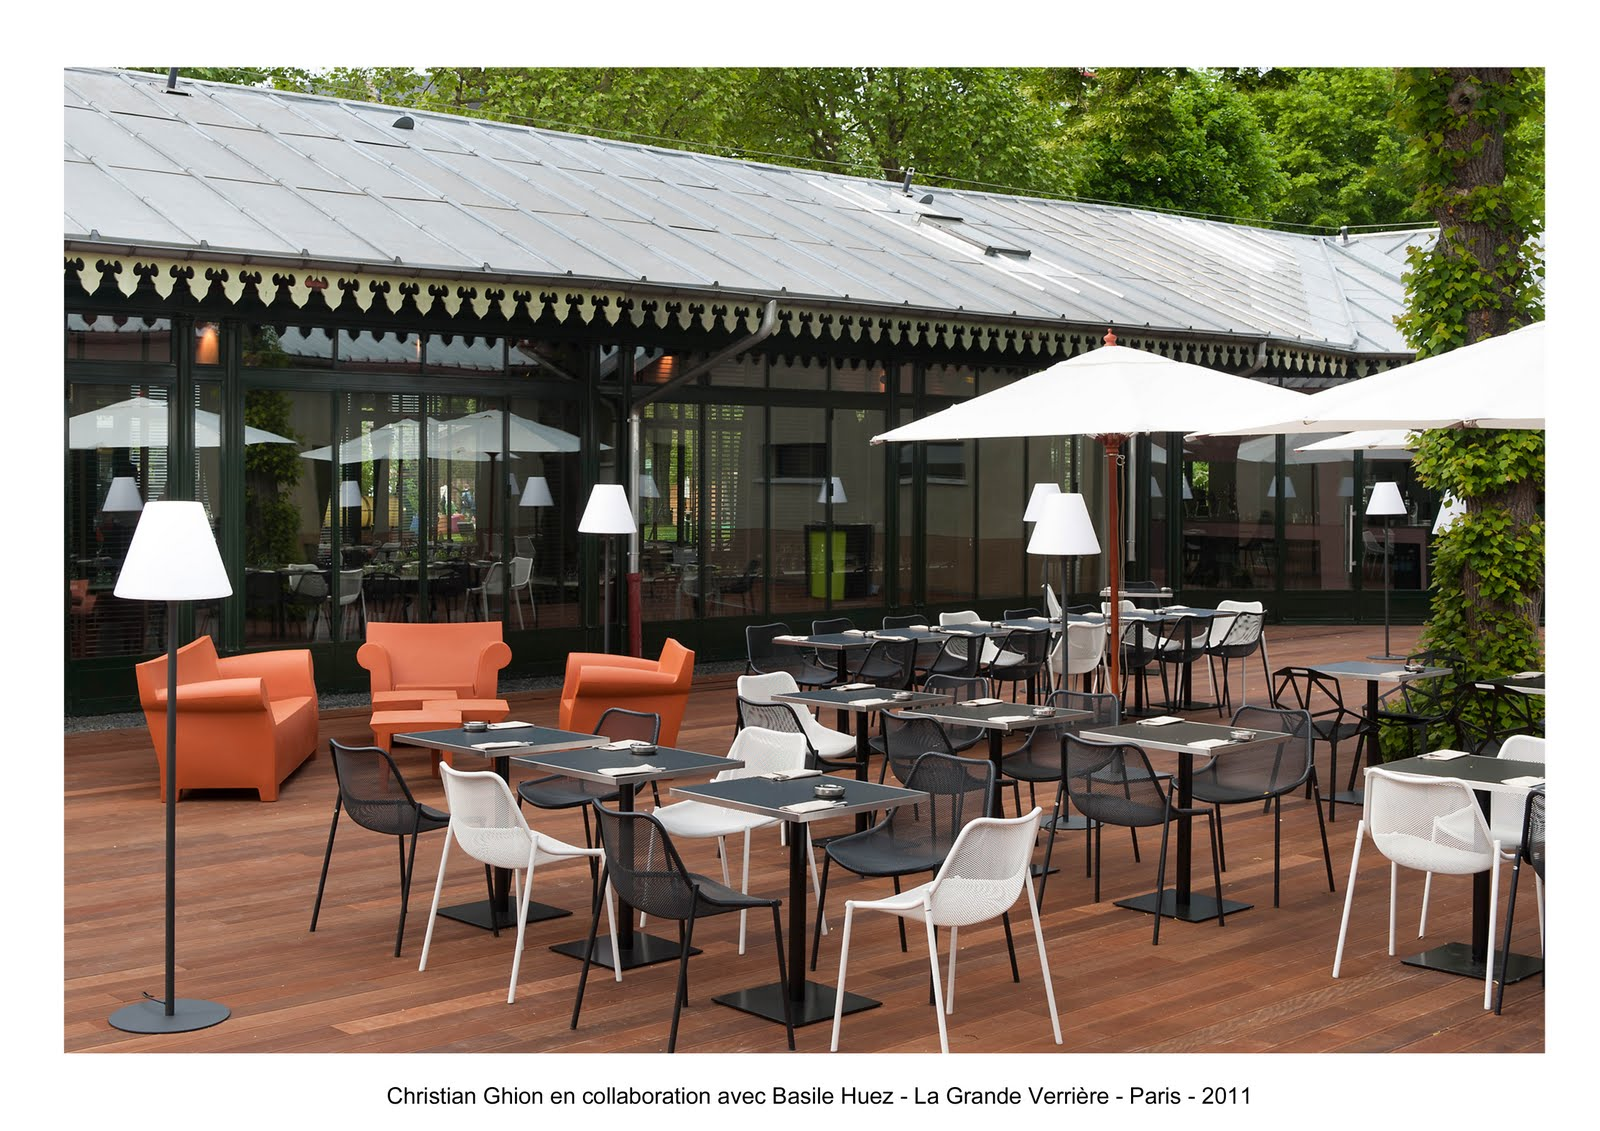 Basile huez design collaborations restaurant la grande verri re jardin d 39 acclimatation - Jardin d acclimatation restaurant ...